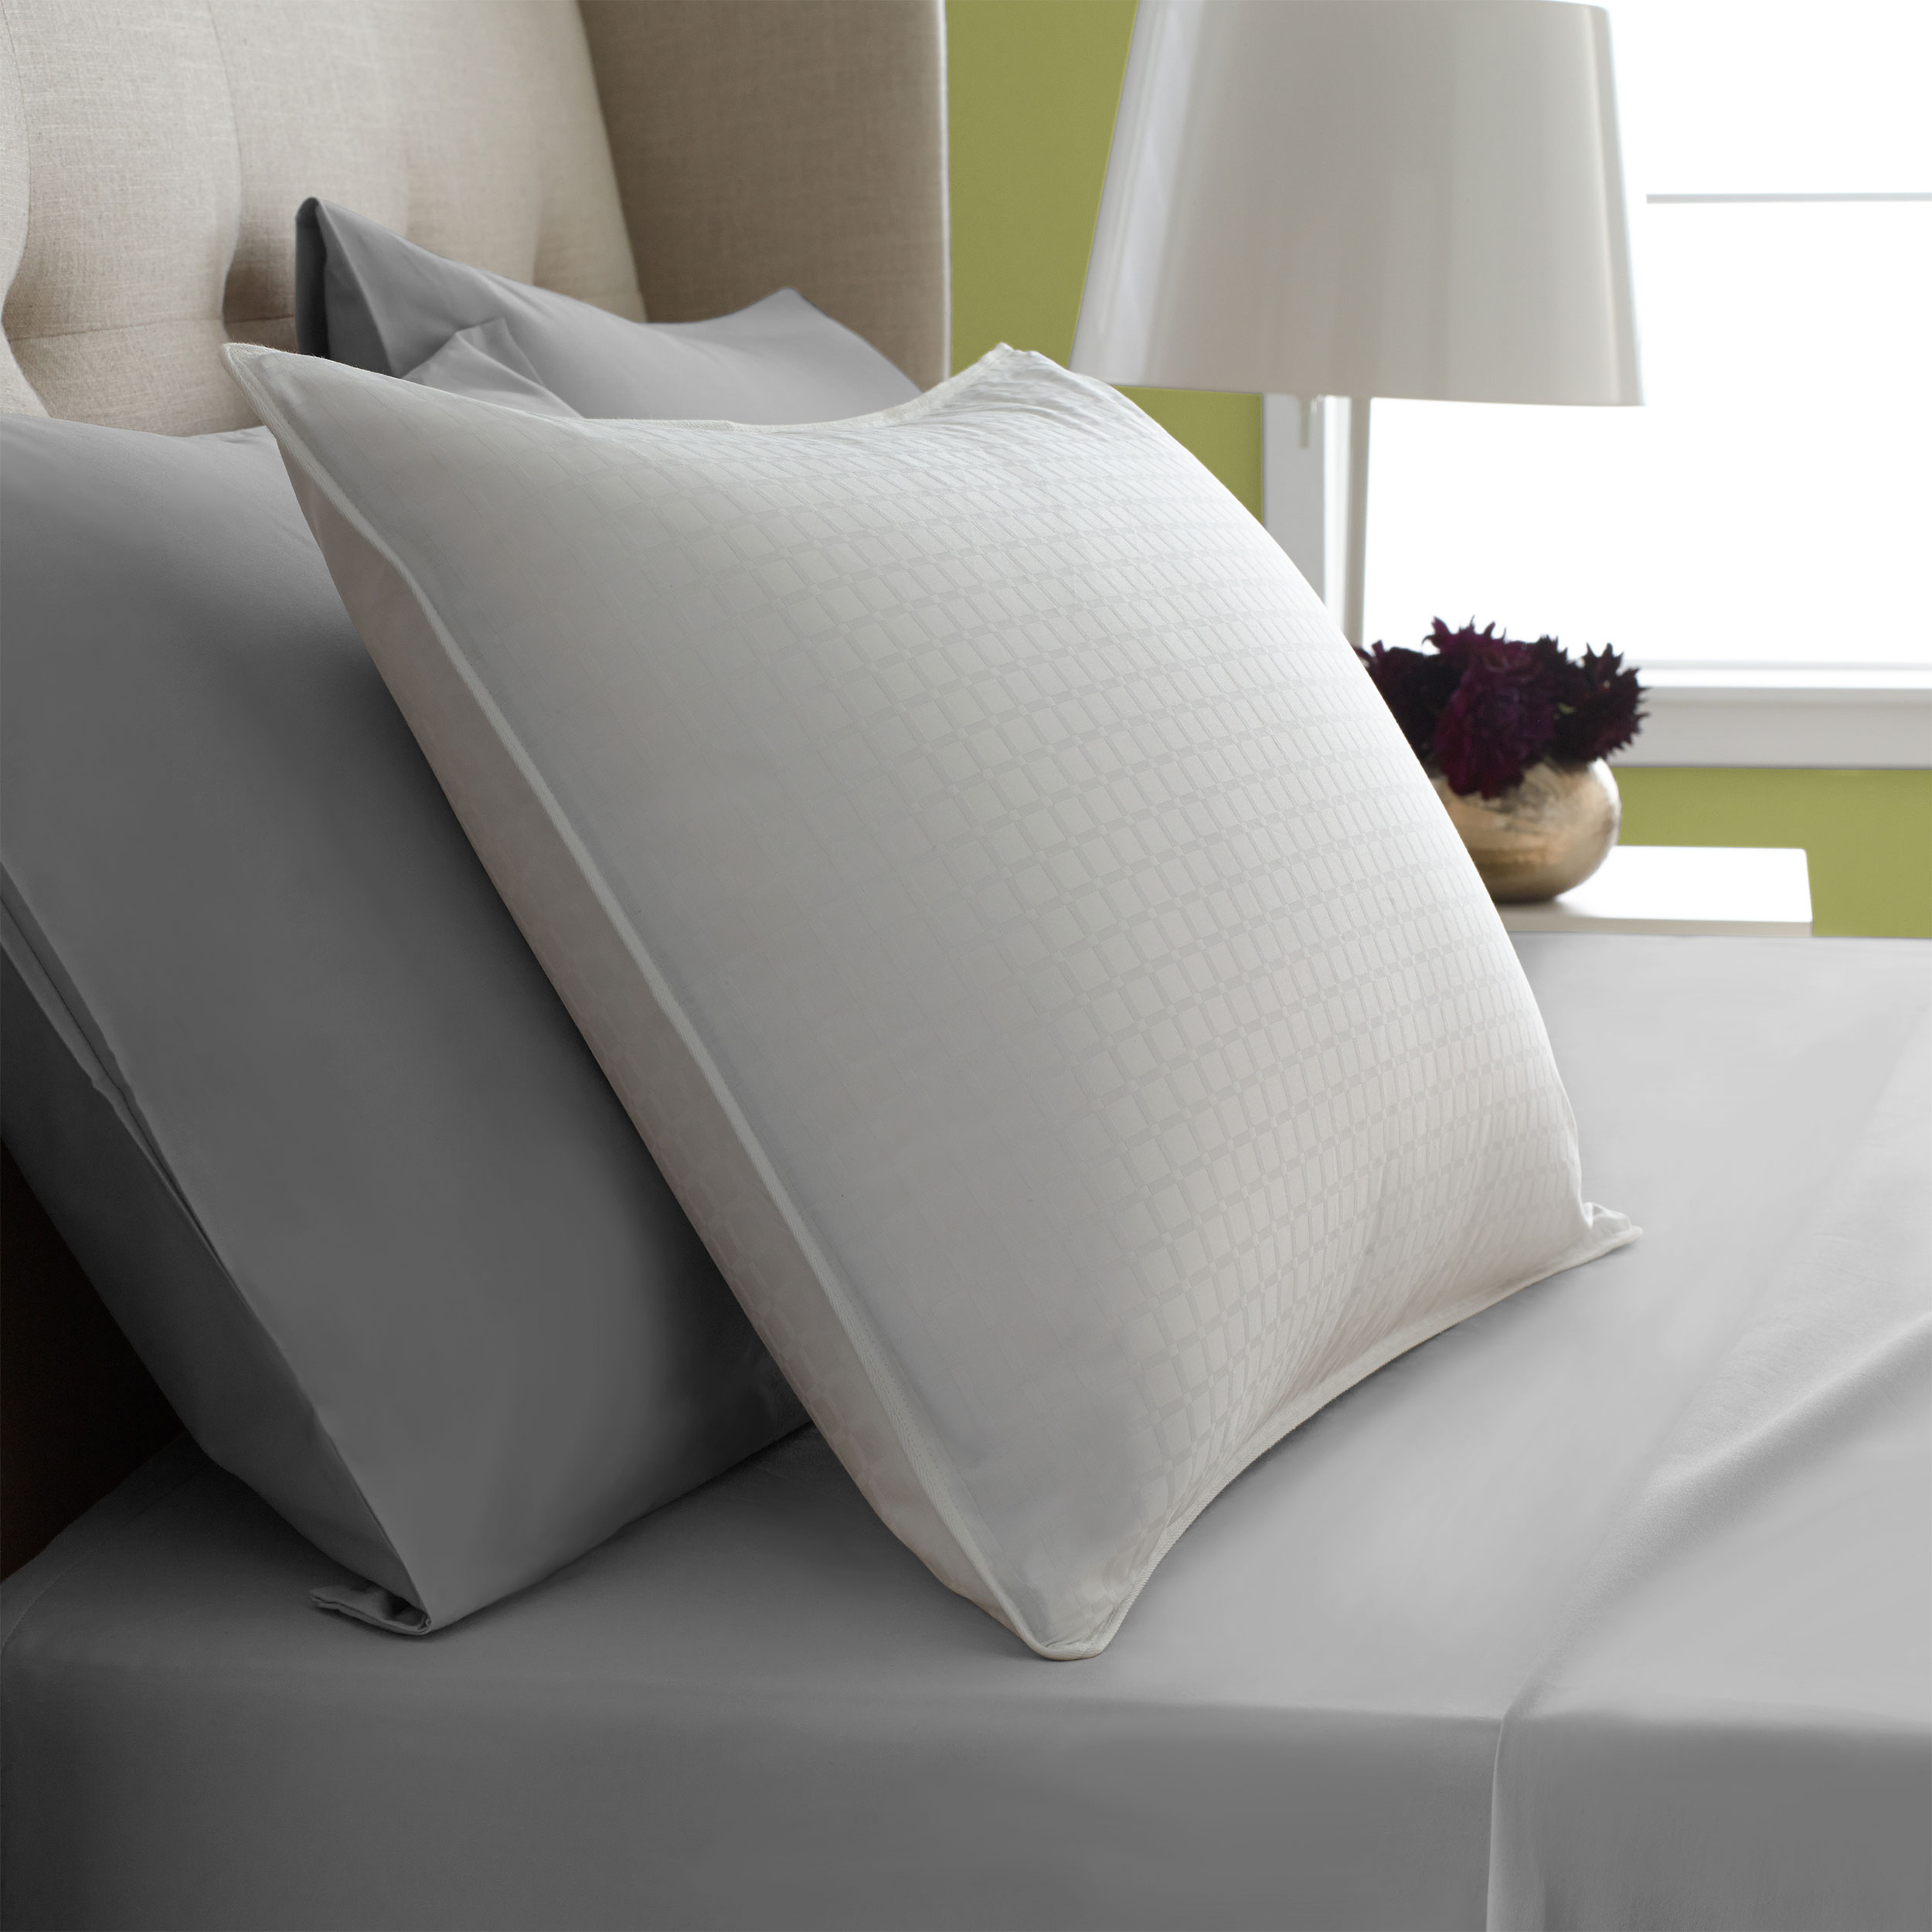 Pacific Coast® Online Bedding Stores Protectors